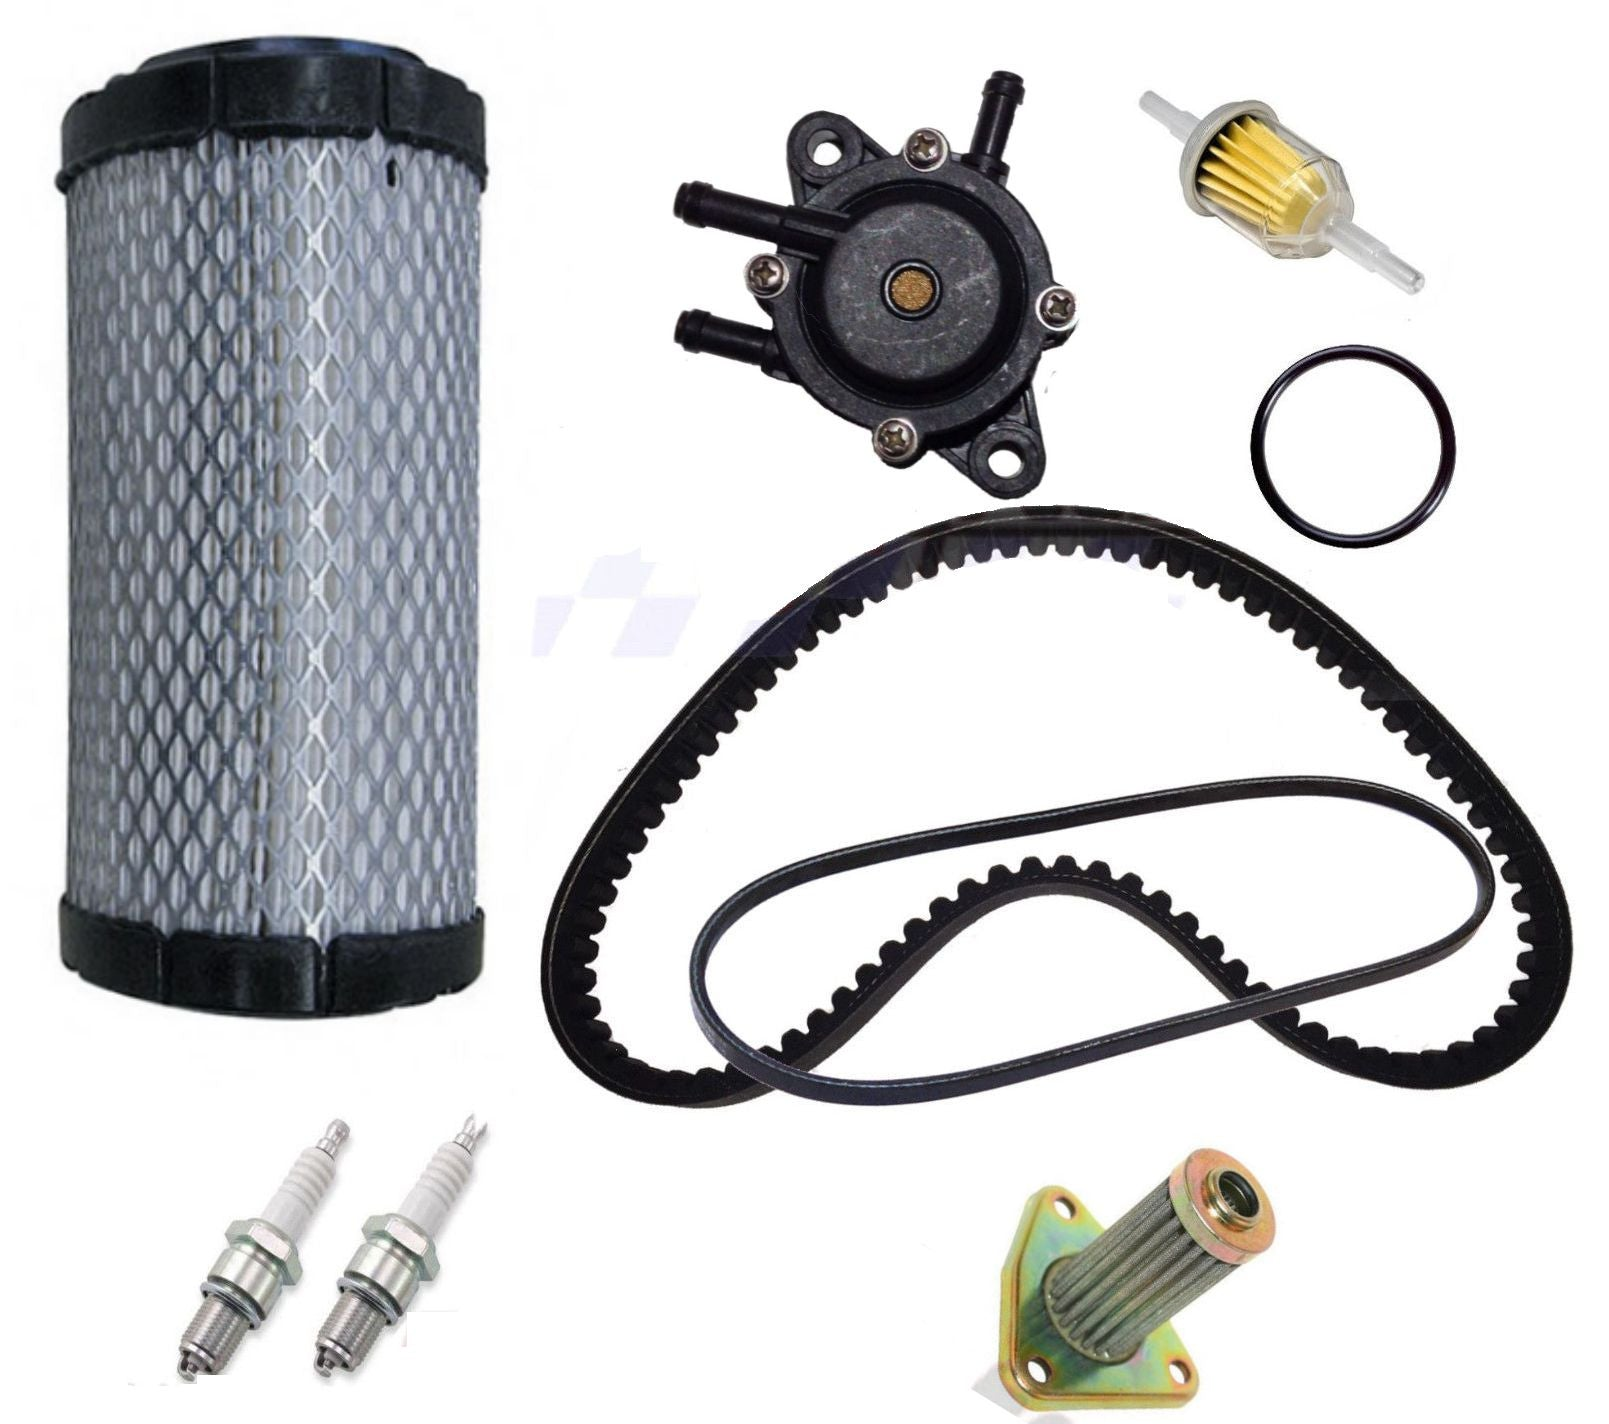 EZGO TXT ST350 Gas Golf Cart Tune Up Kit 96-up Fuel Pump Drive Starter Belt